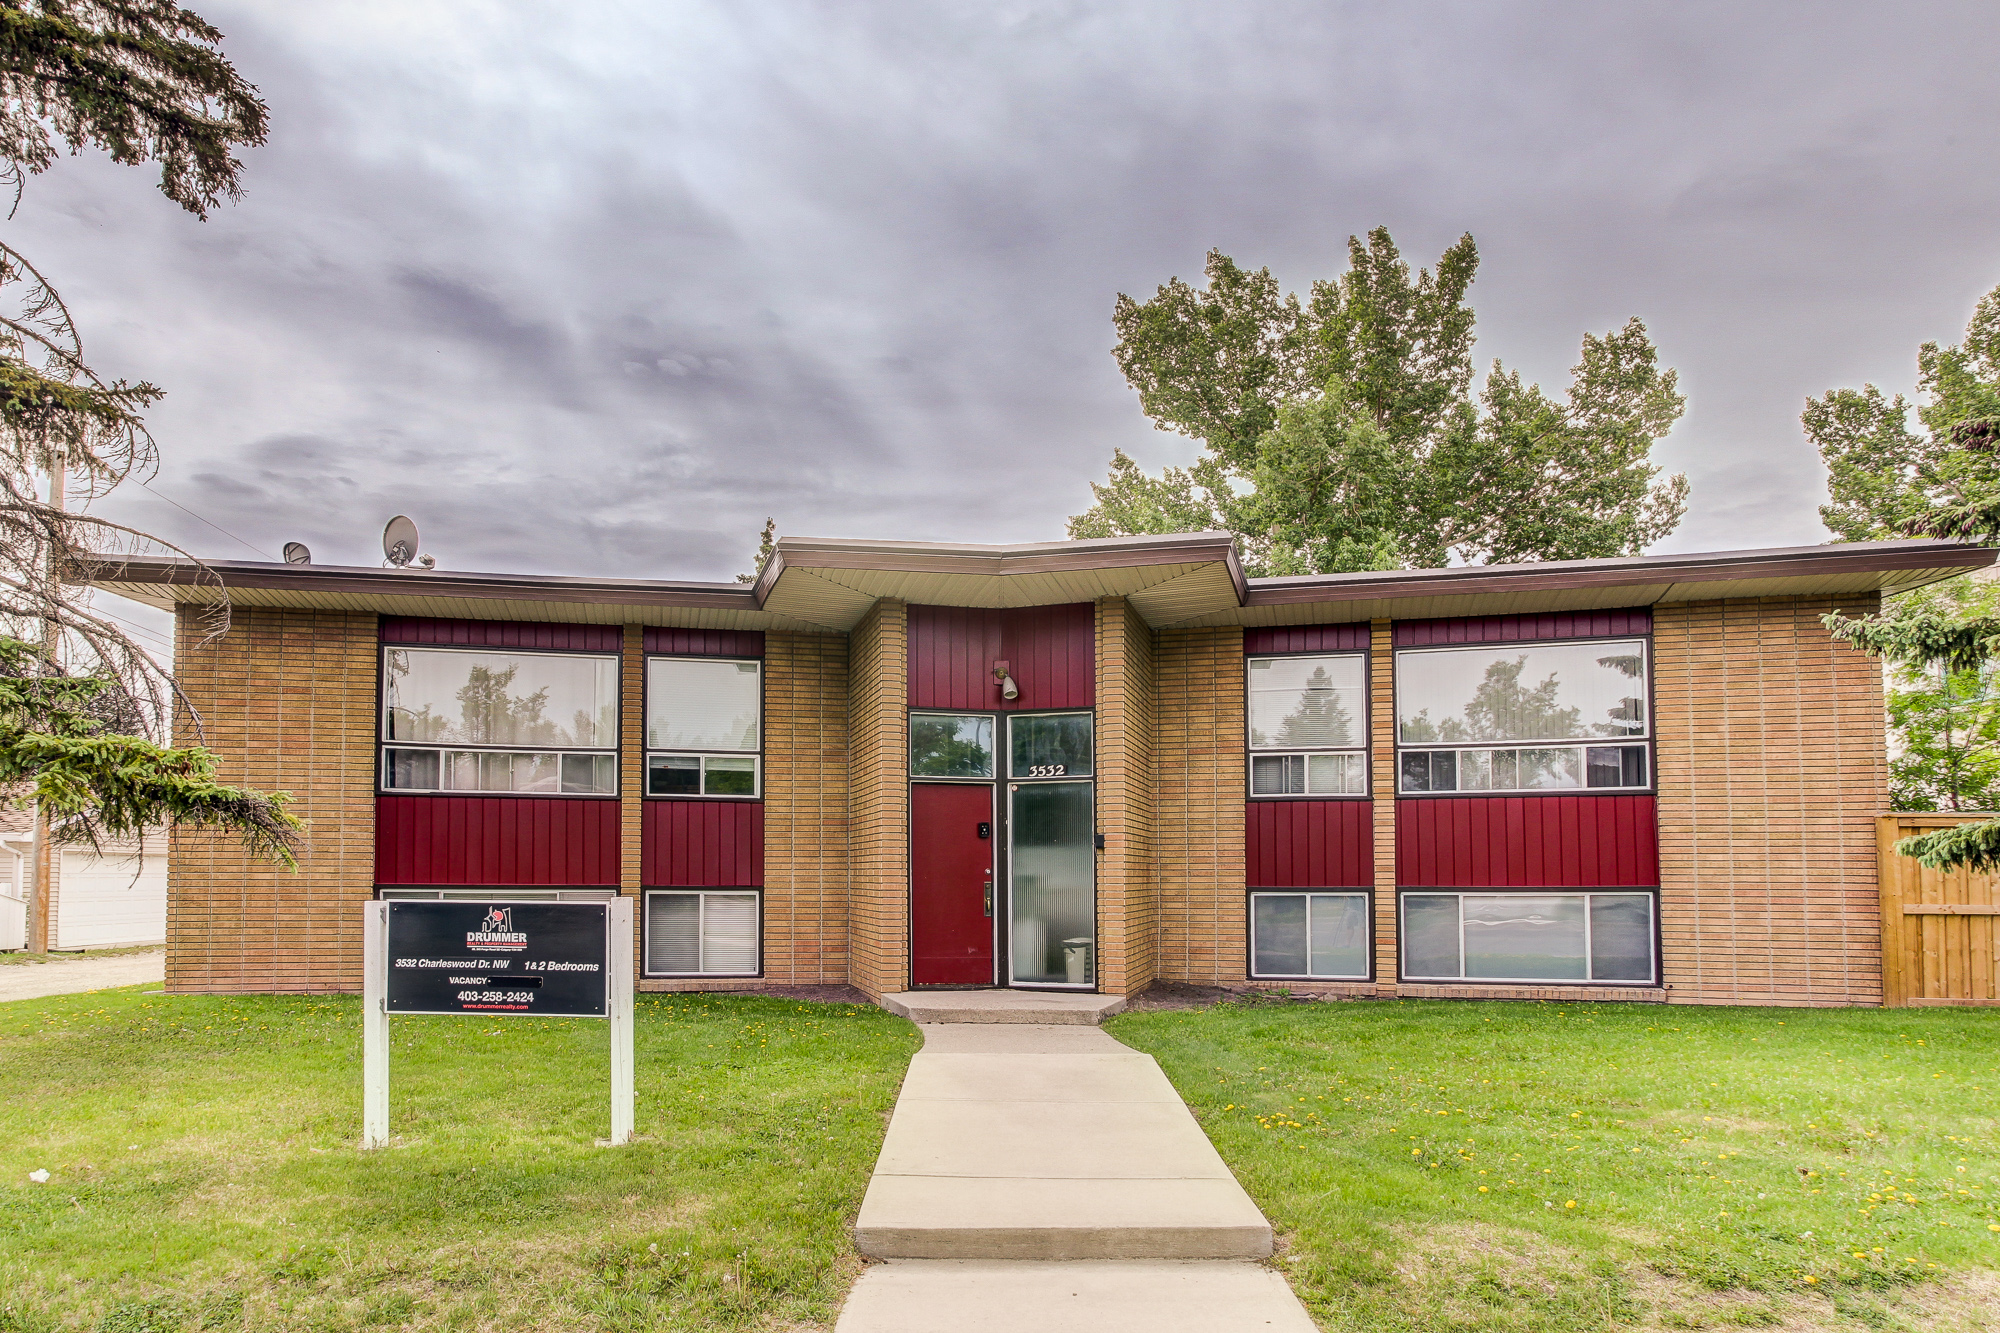 3532 Charleswood Dr NW is Now Available